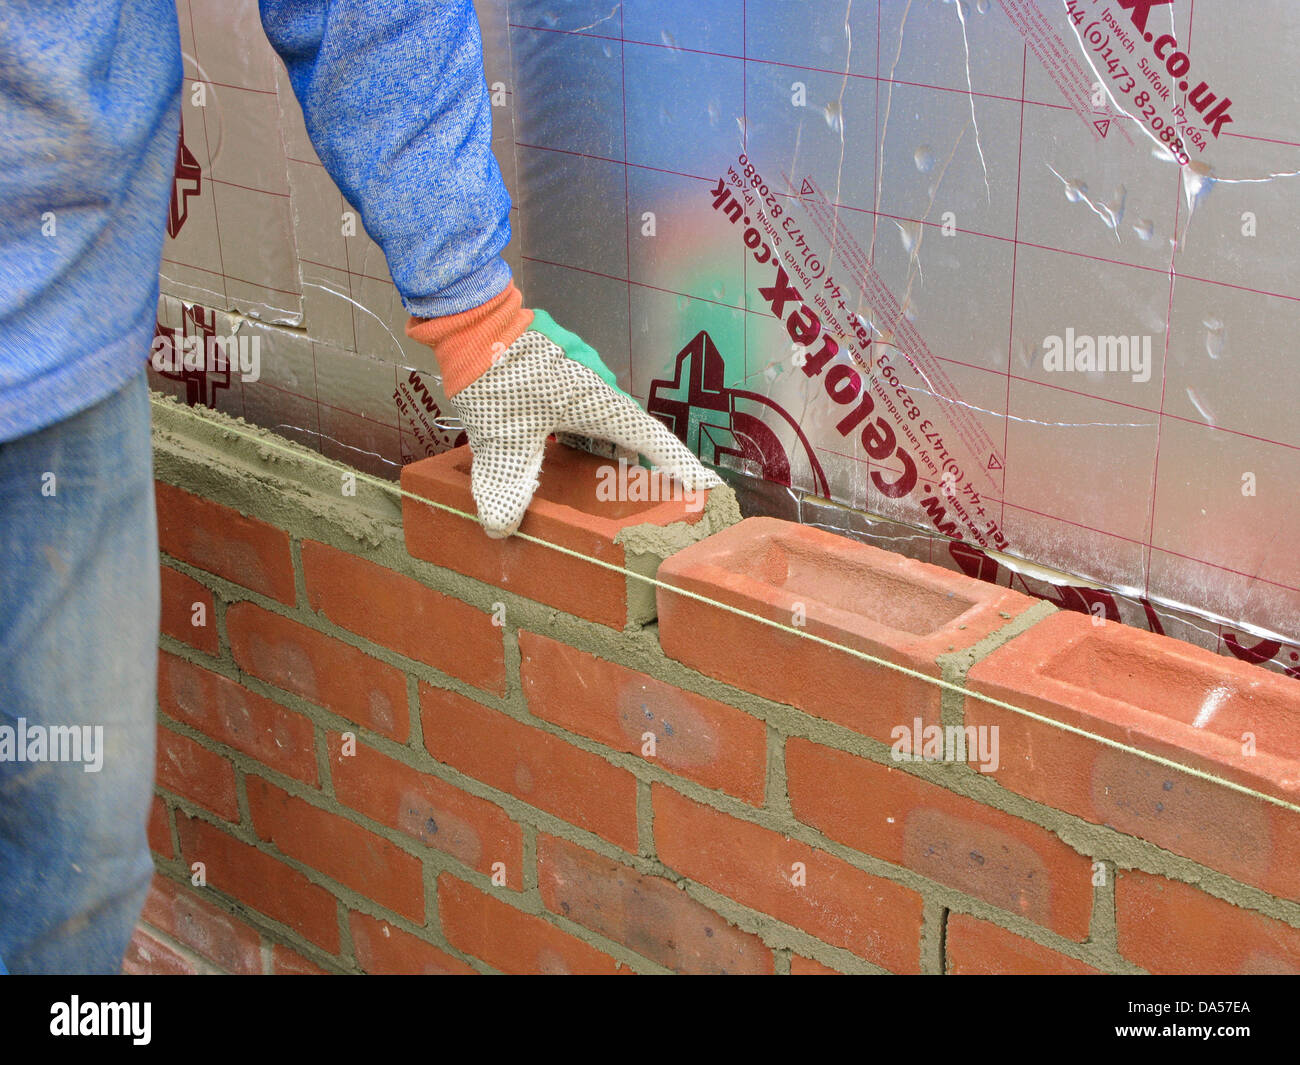 Insulation Boards For Walls : Builder cementing building a brick wall with celotex